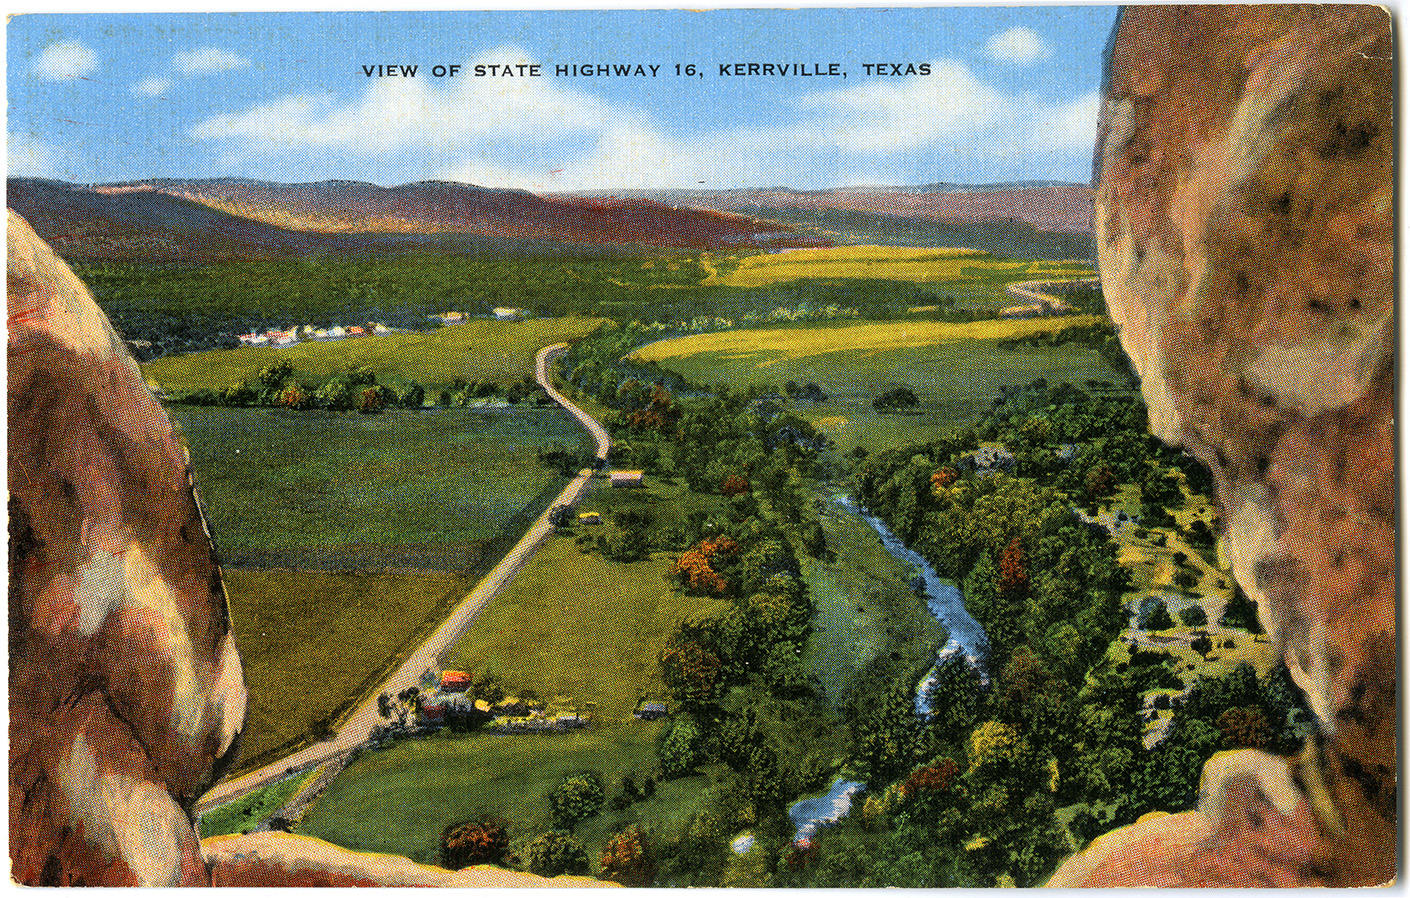 View of State Highway 16, Kerrville, Texas